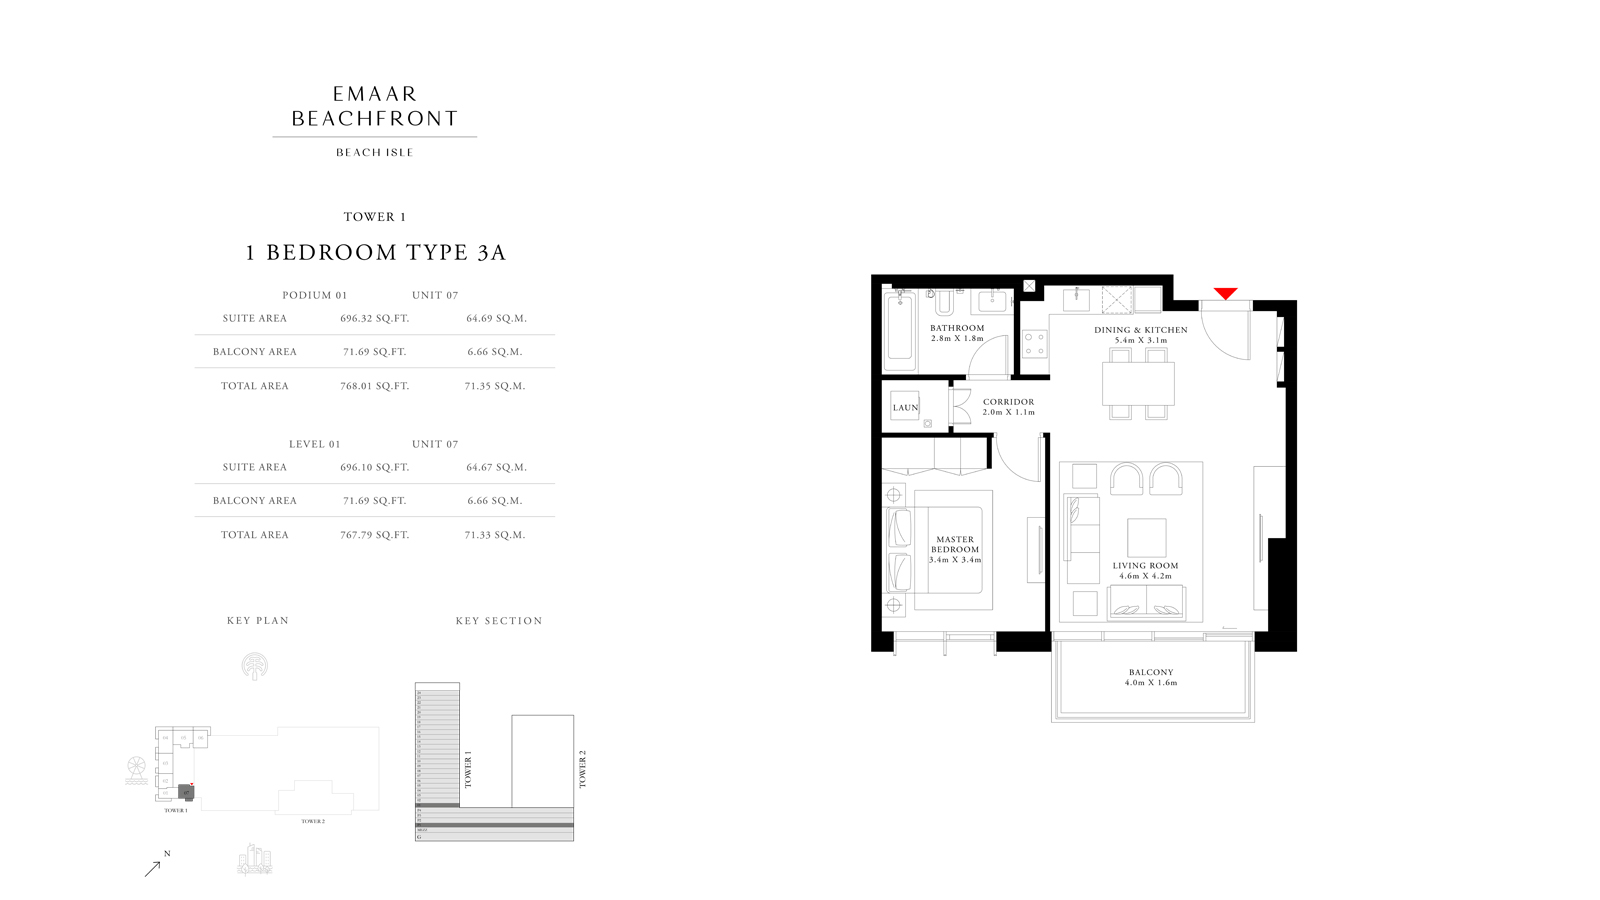 1 Bedroom Type 3A Tower 1, Size 768 sq ft